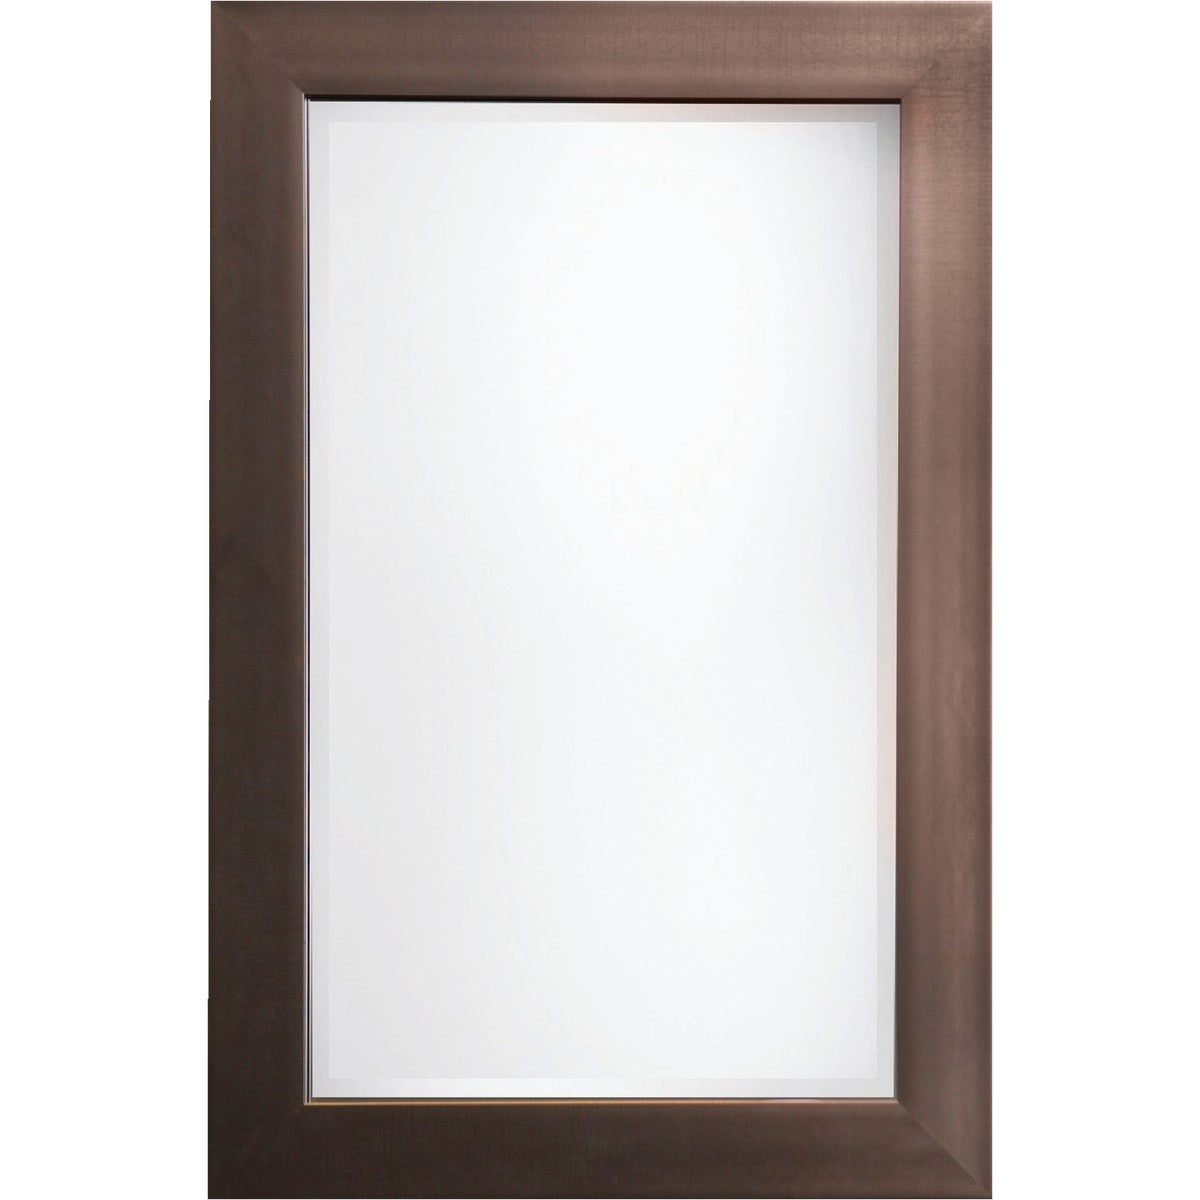 ASTN AN PWTR WALL MIRROR - 20-0128 by Home Decor Innovatns